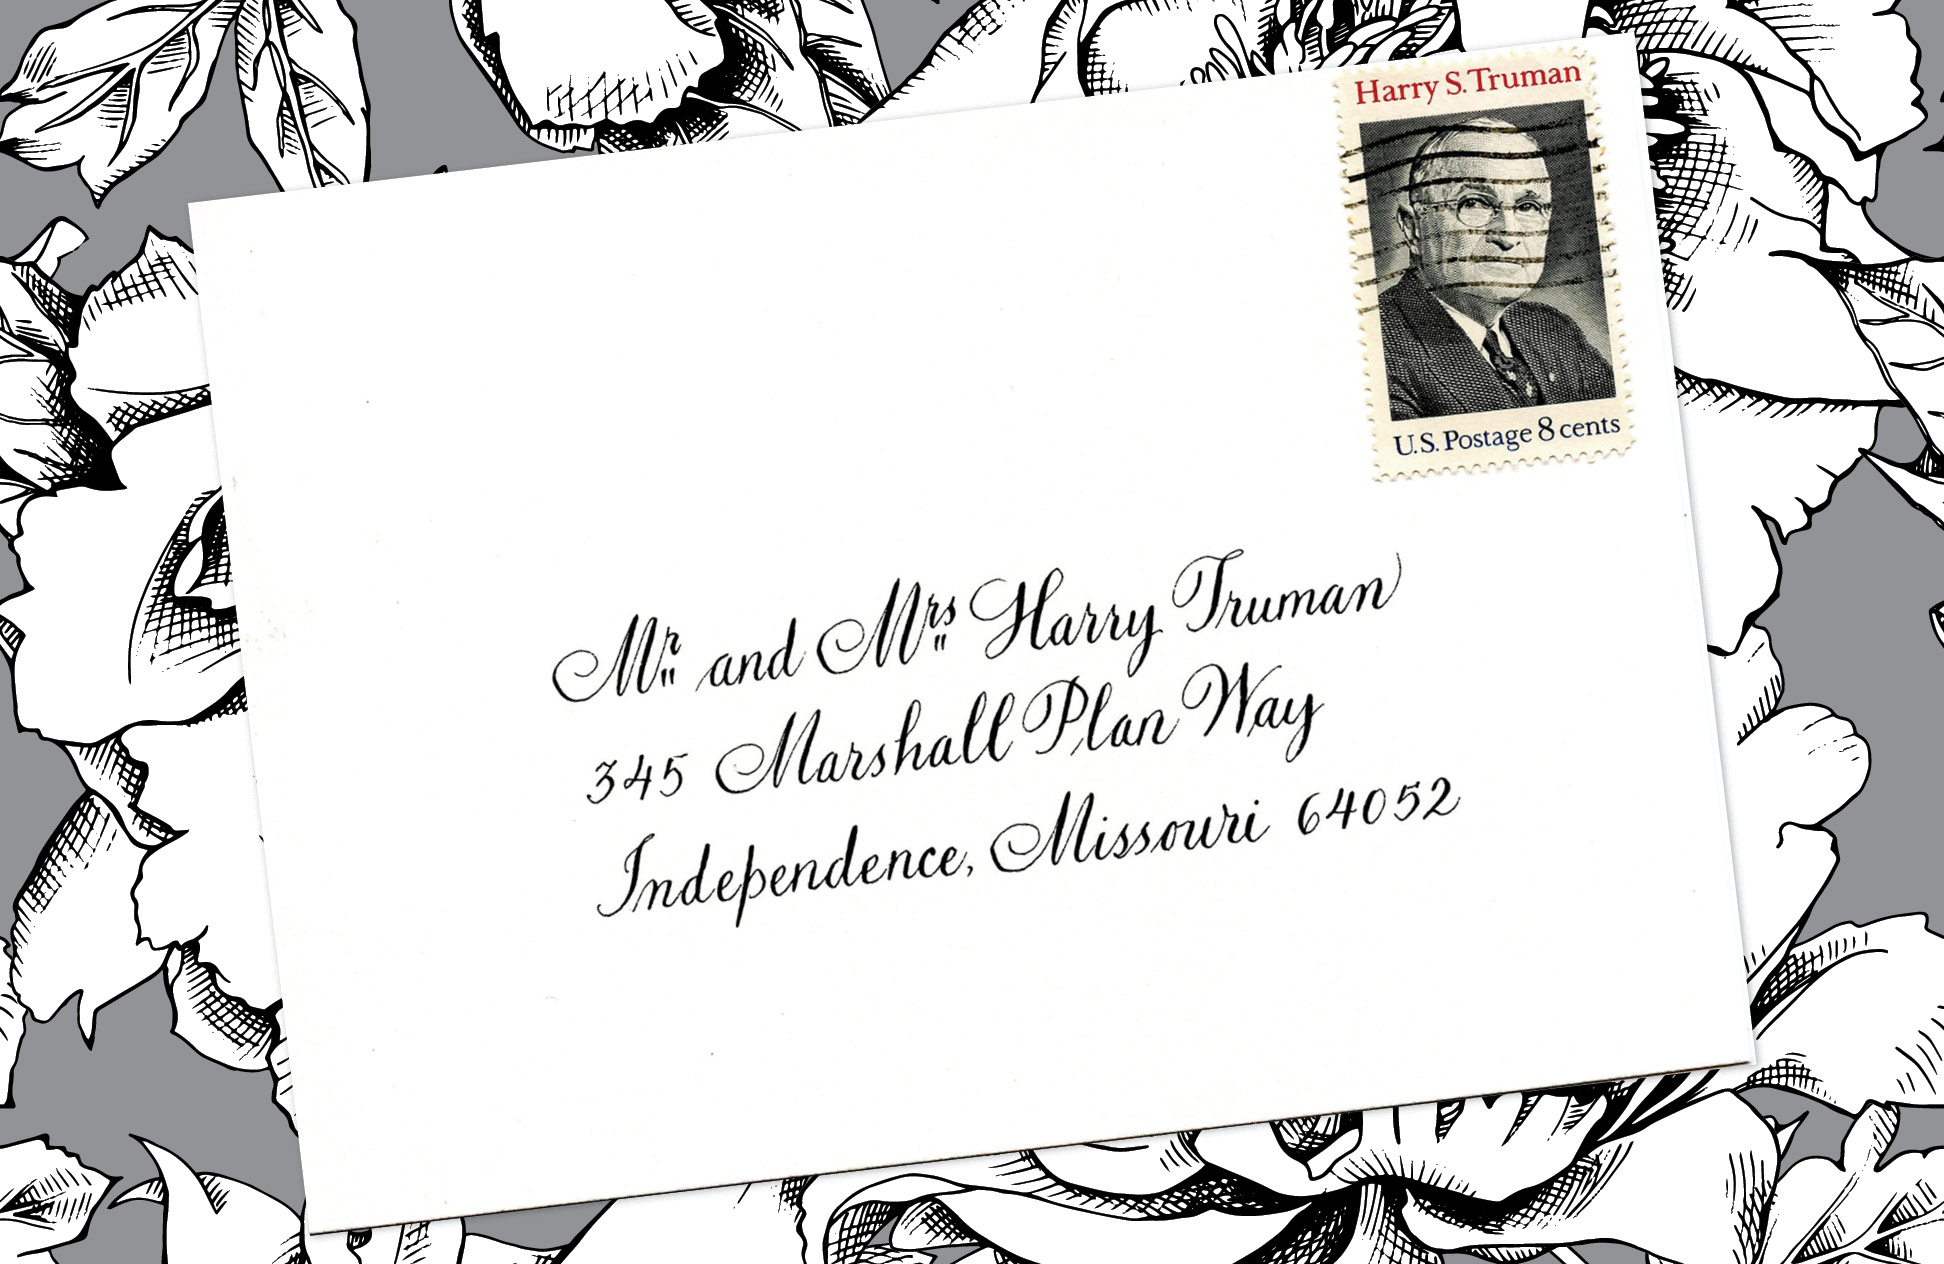 7. Style: Mr. and Mrs. Harry Truman (Truman)